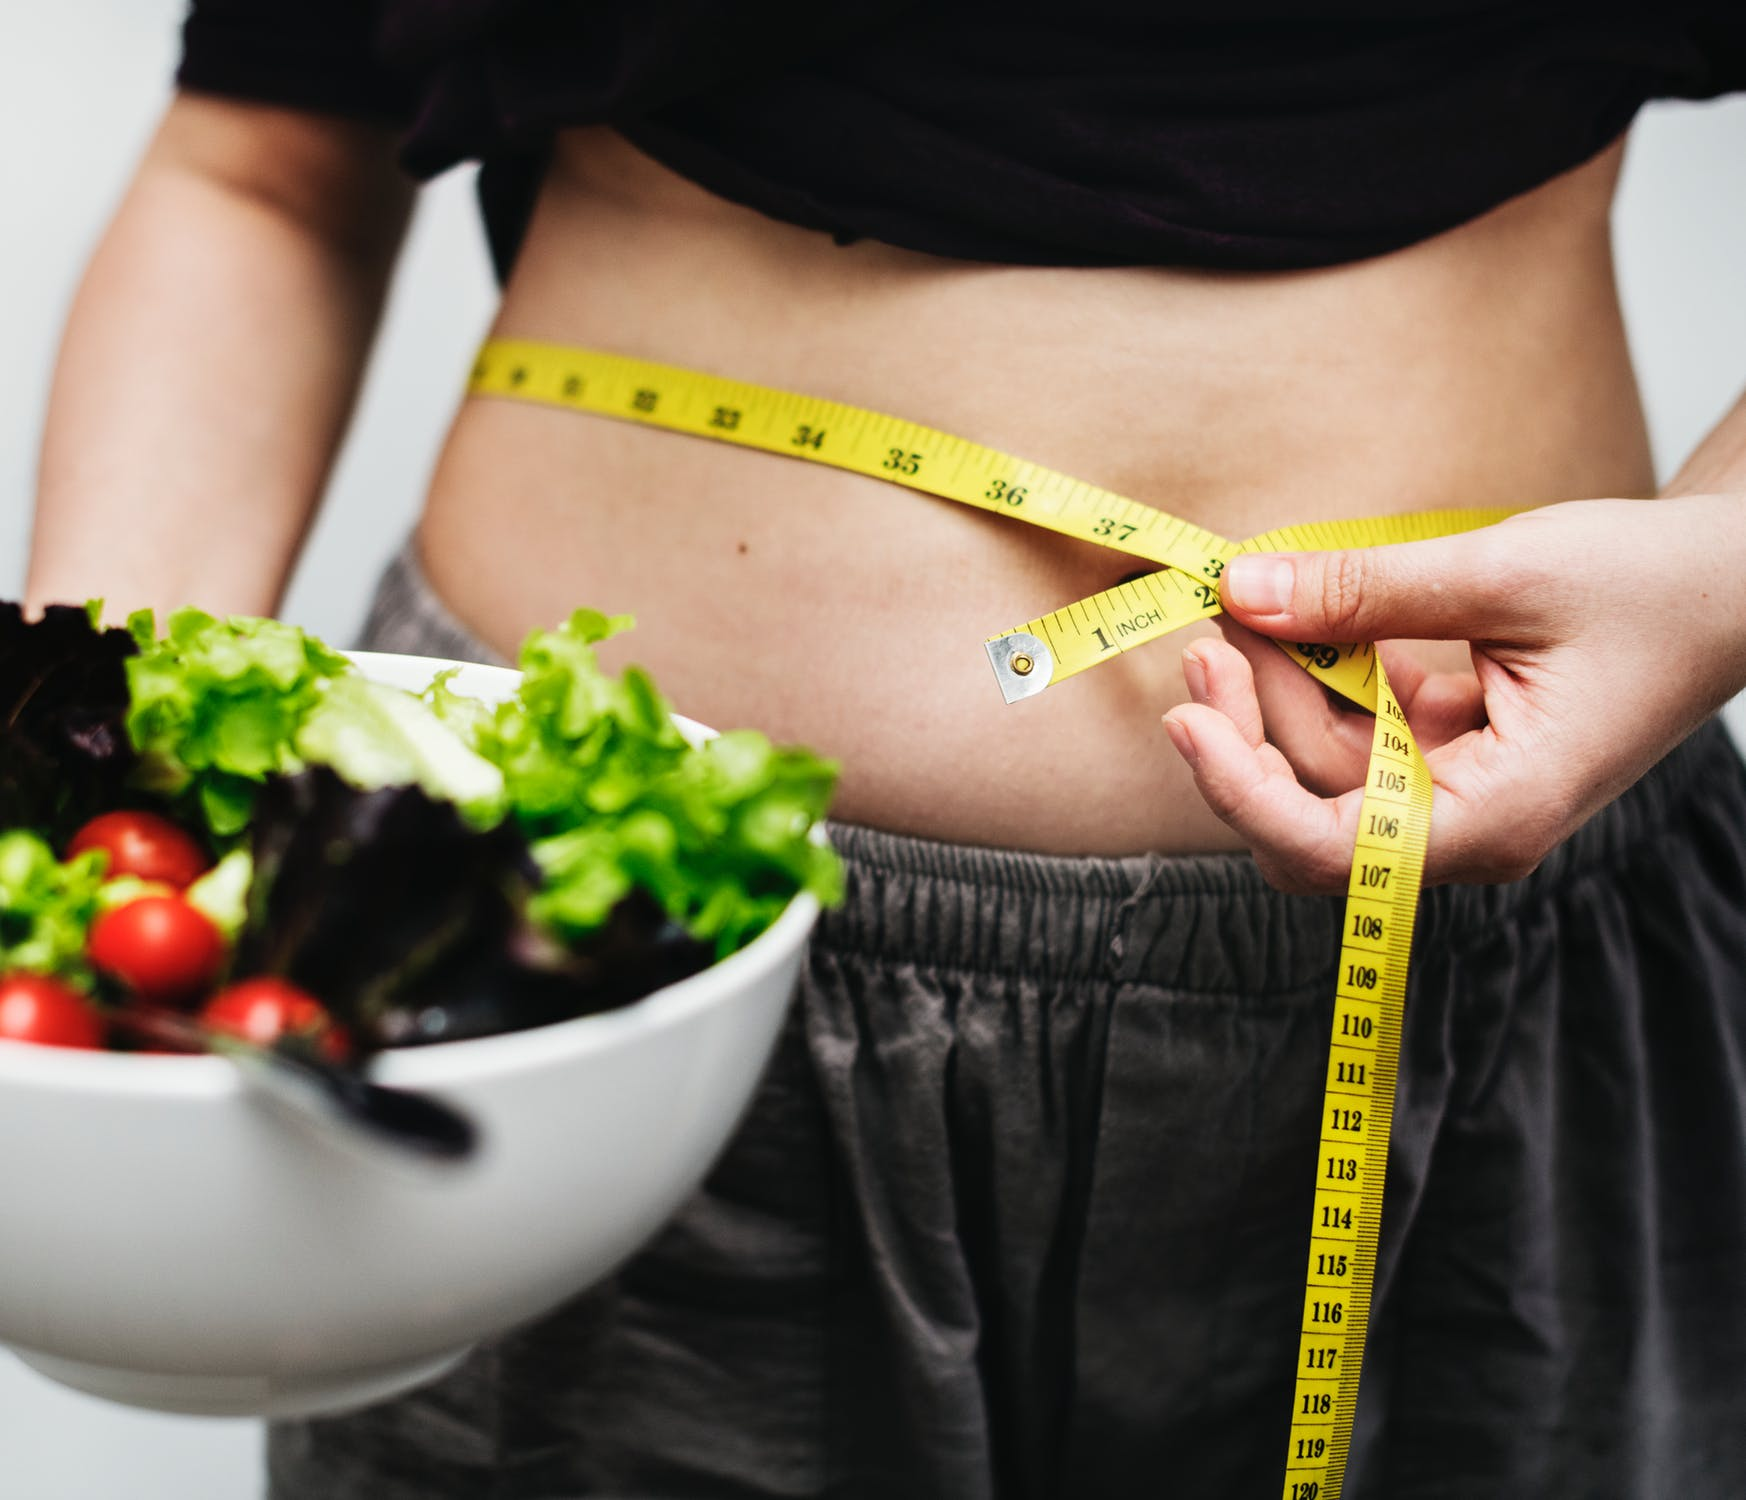 6 Proven Ways to Fight Obesity